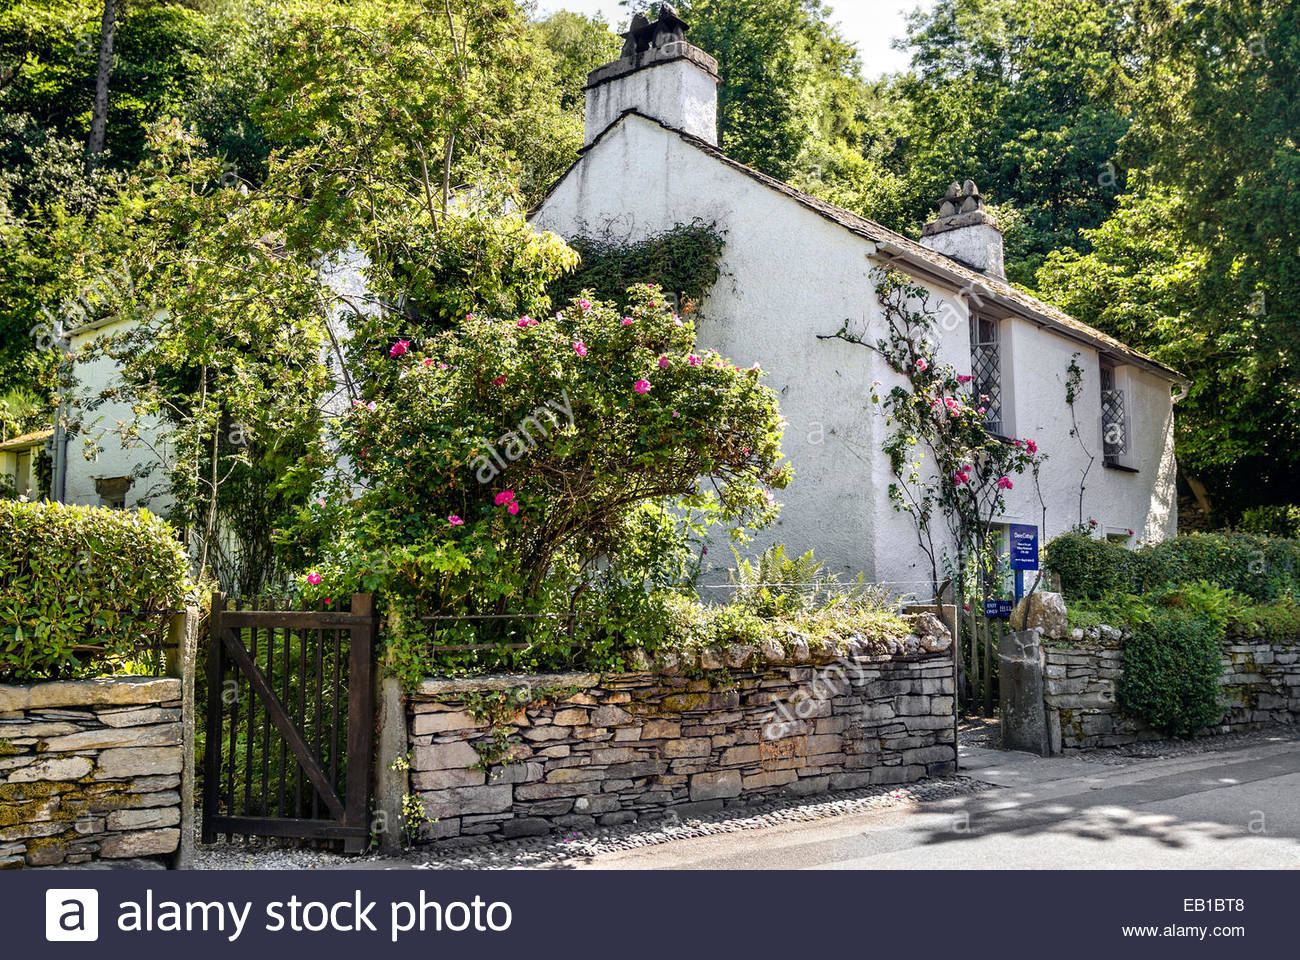 Dove Cottage, a small cottage on the outskirts of Grasmere where the poet William Wordsworth lived from 1799. - Stock Image